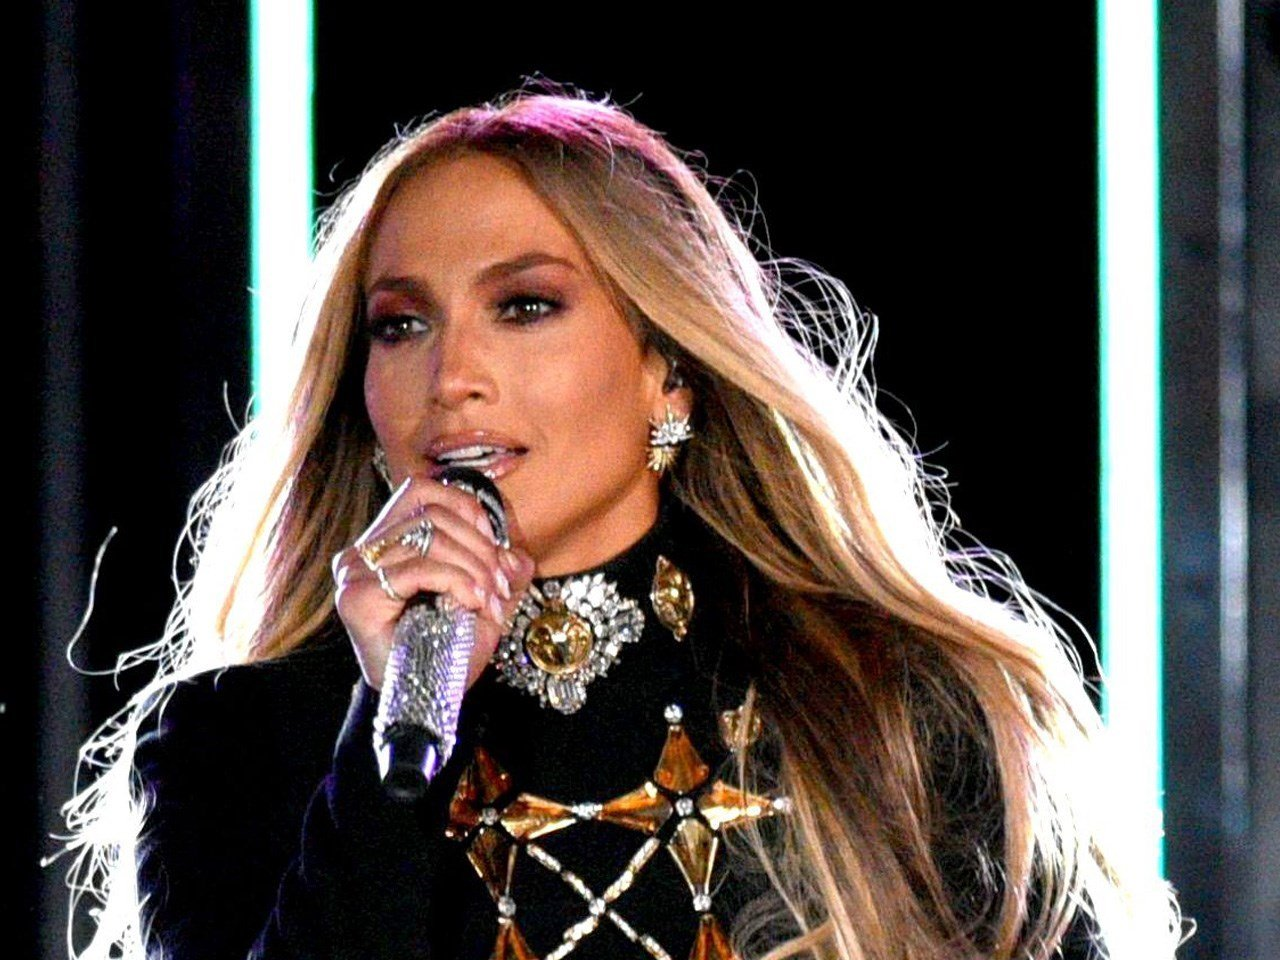 Jennifer Lopez to perform in Minneapolis on Super Bowl eve